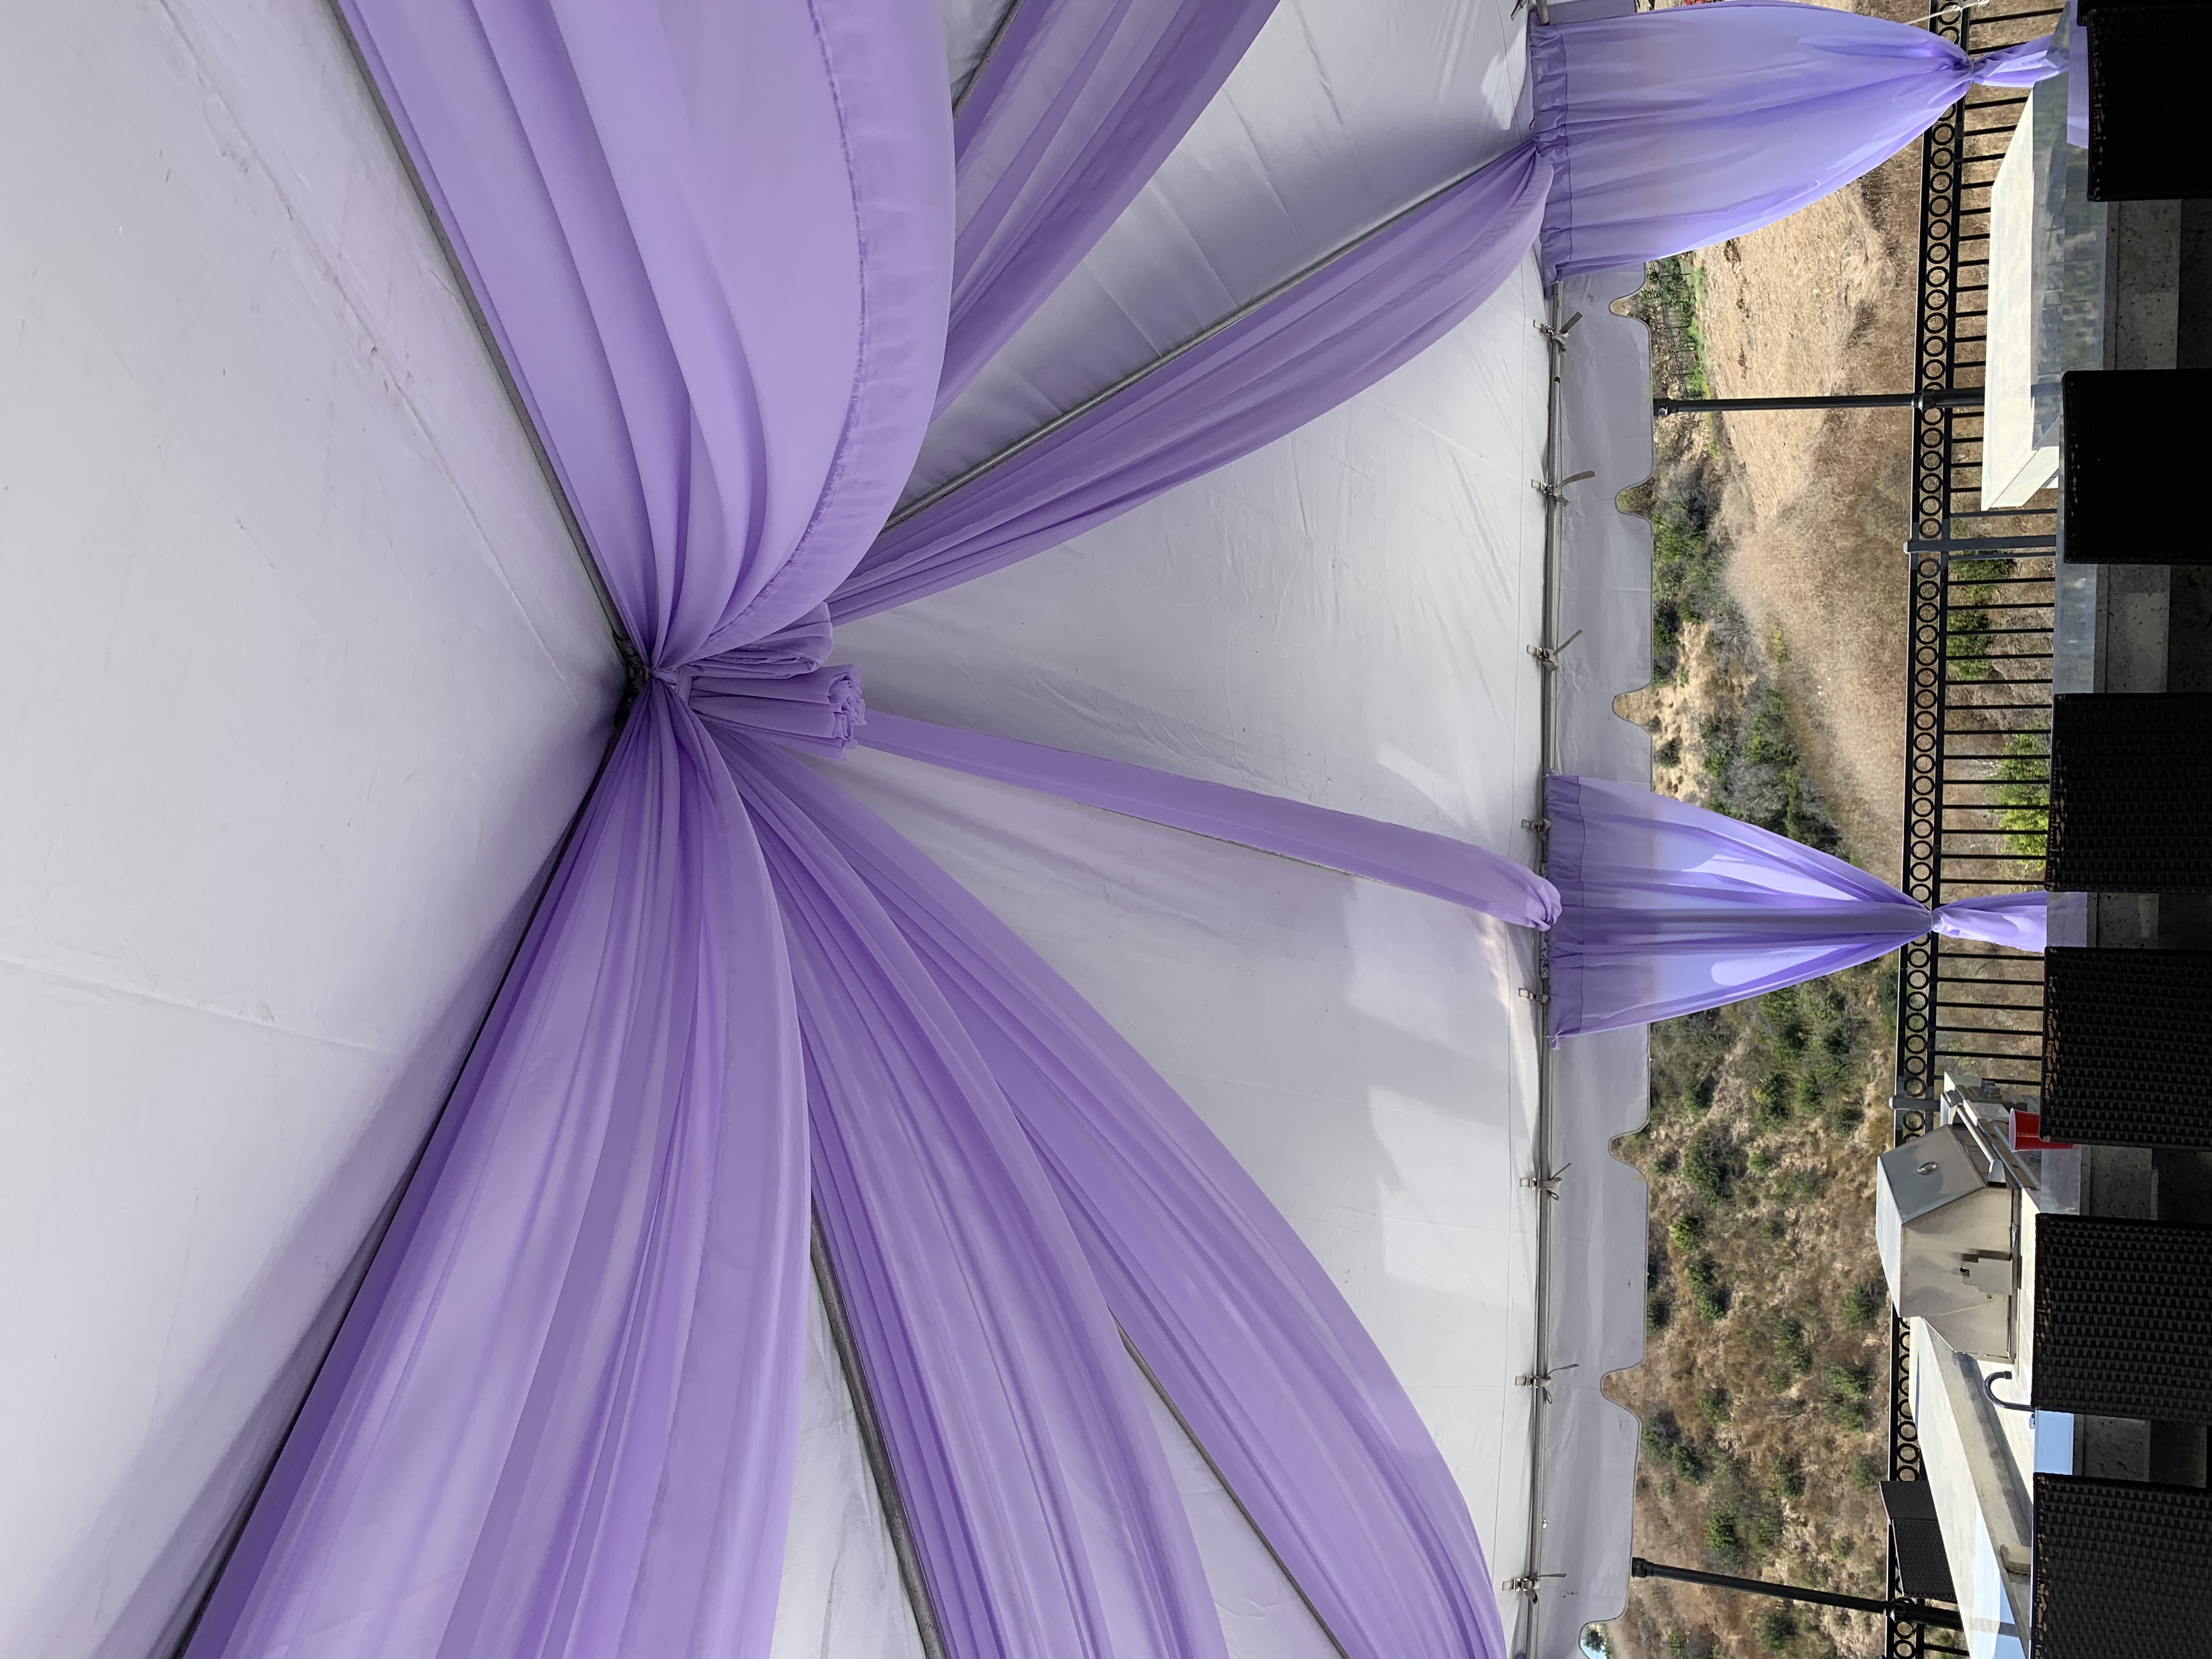 Canopy with Purple Design